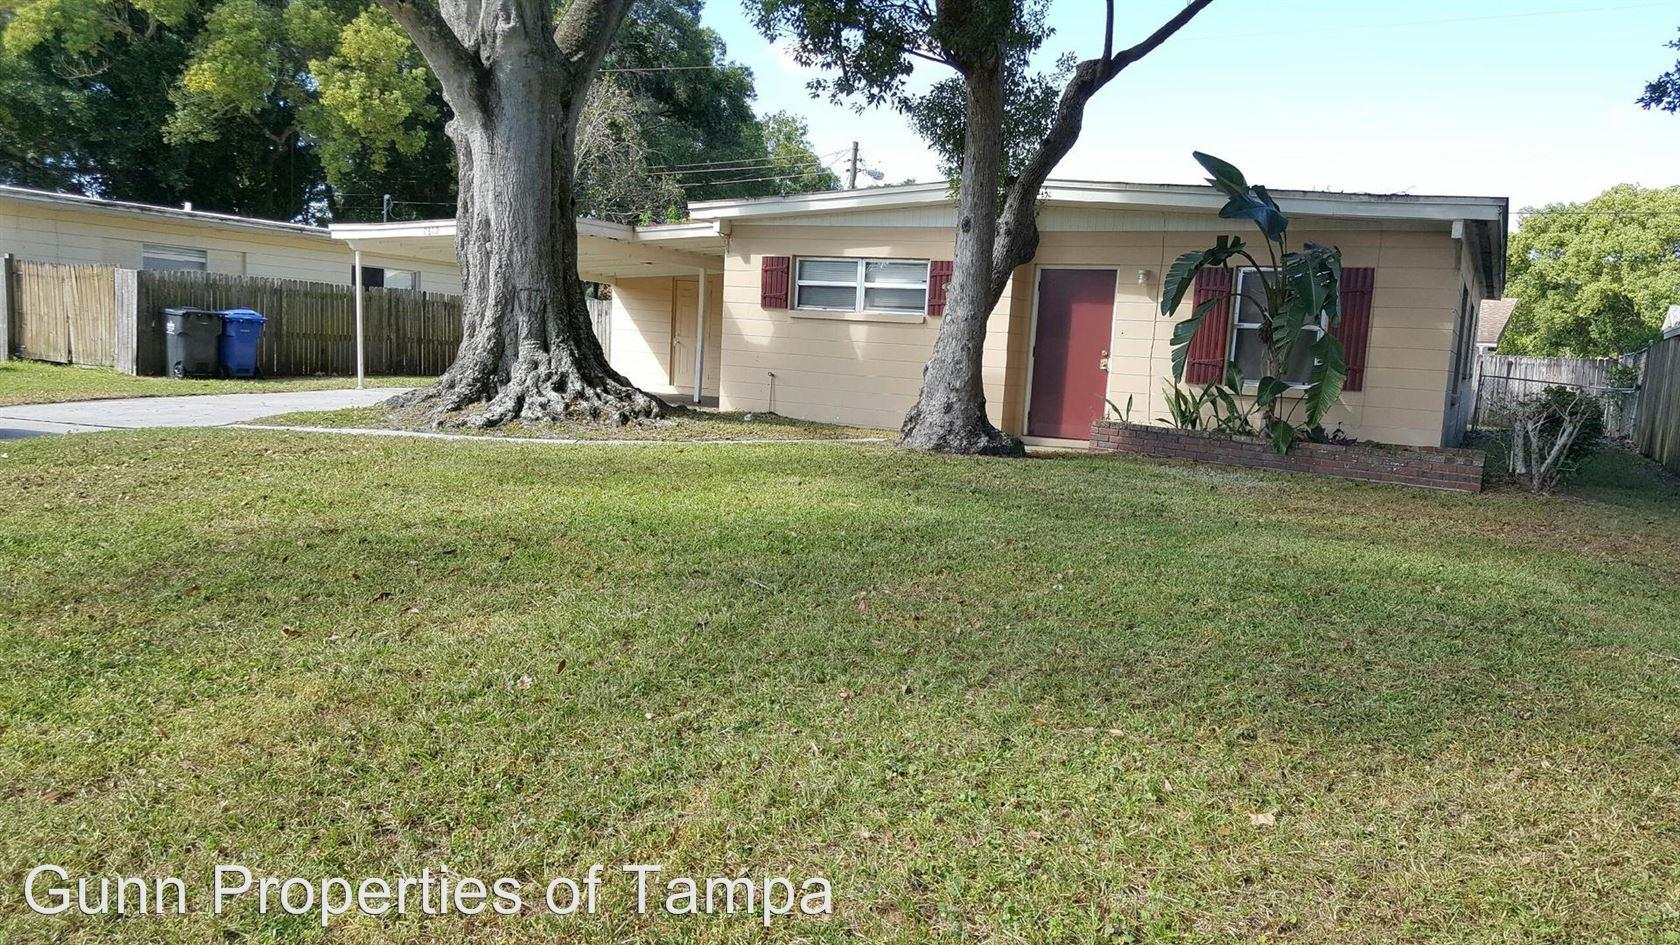 7812 egypt lake dr for rent tampa fl trulia